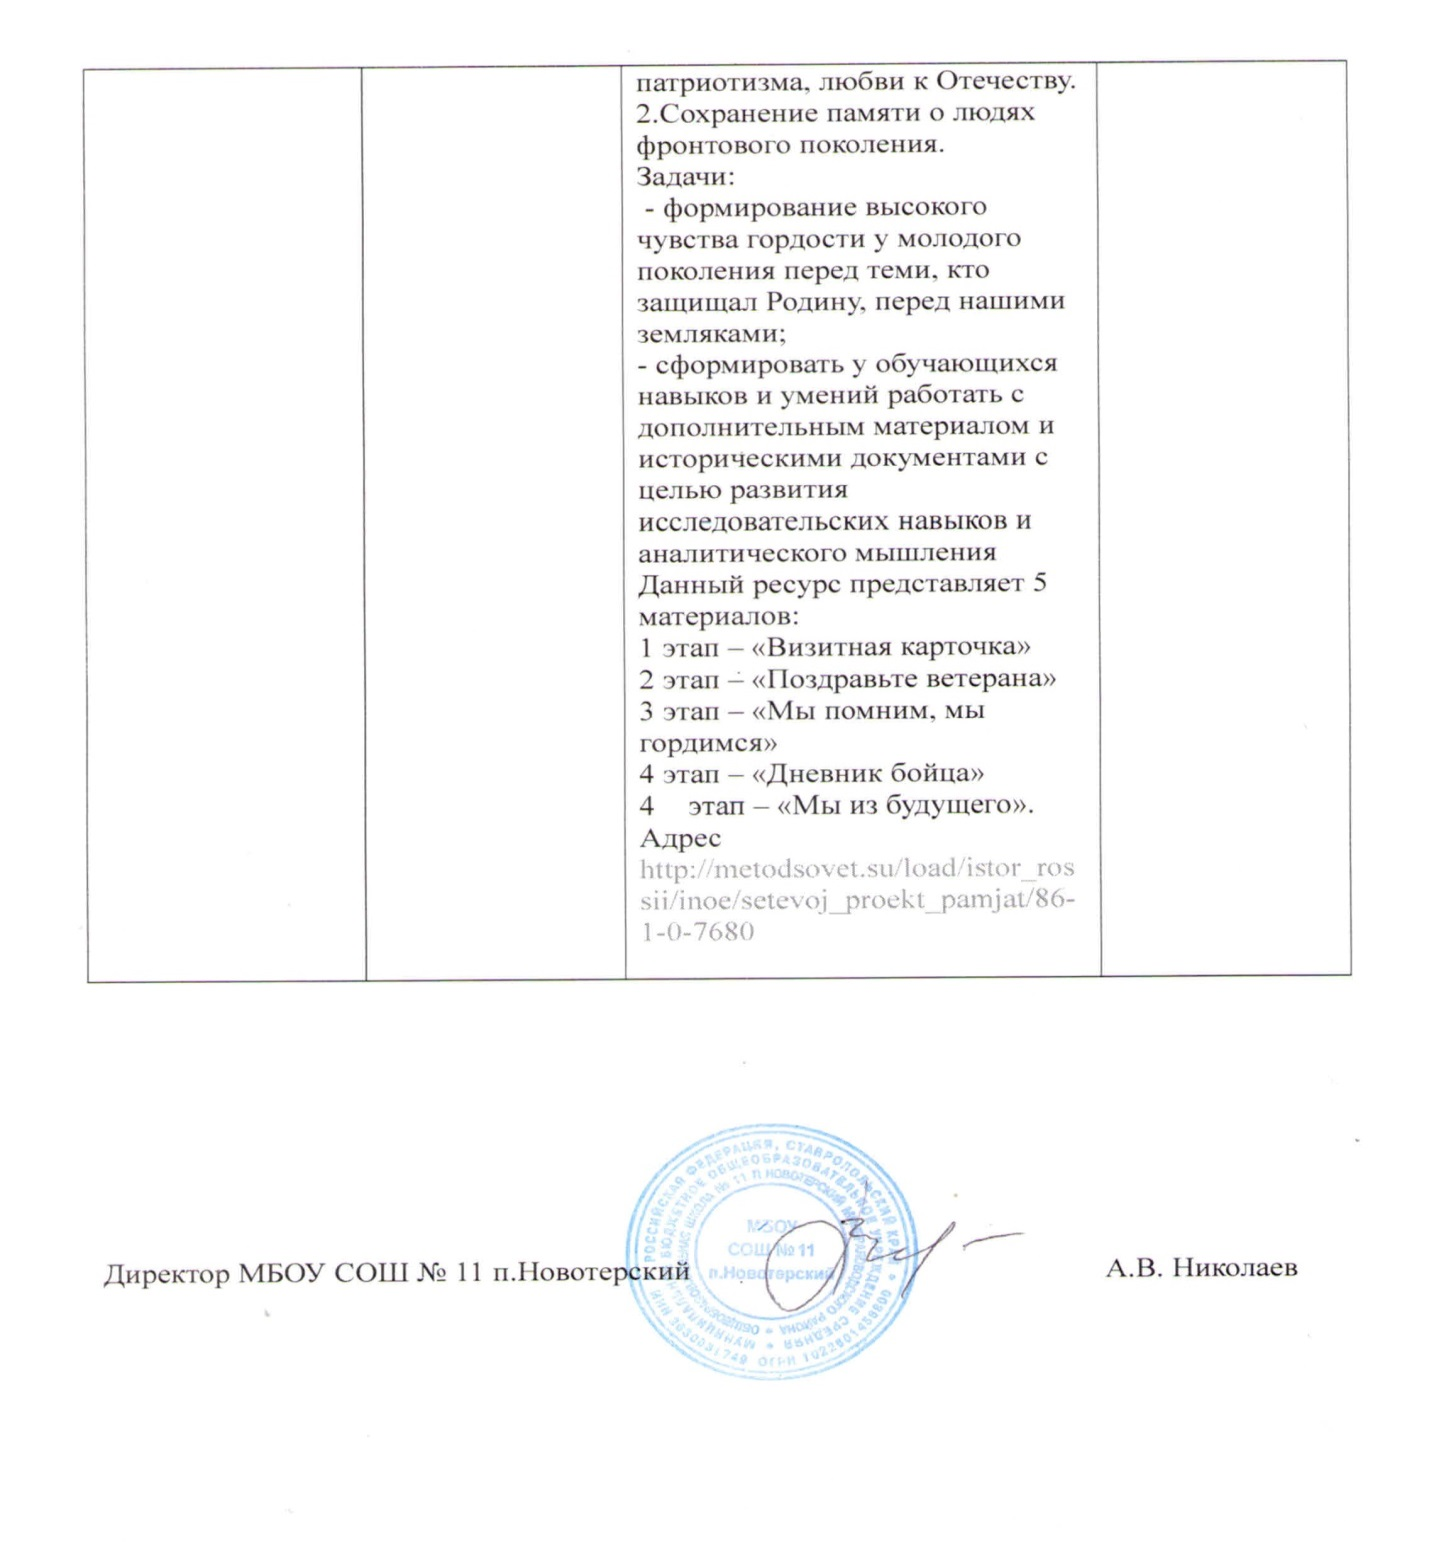 C:\Users\Сергей\Desktop\Document_38.jpg